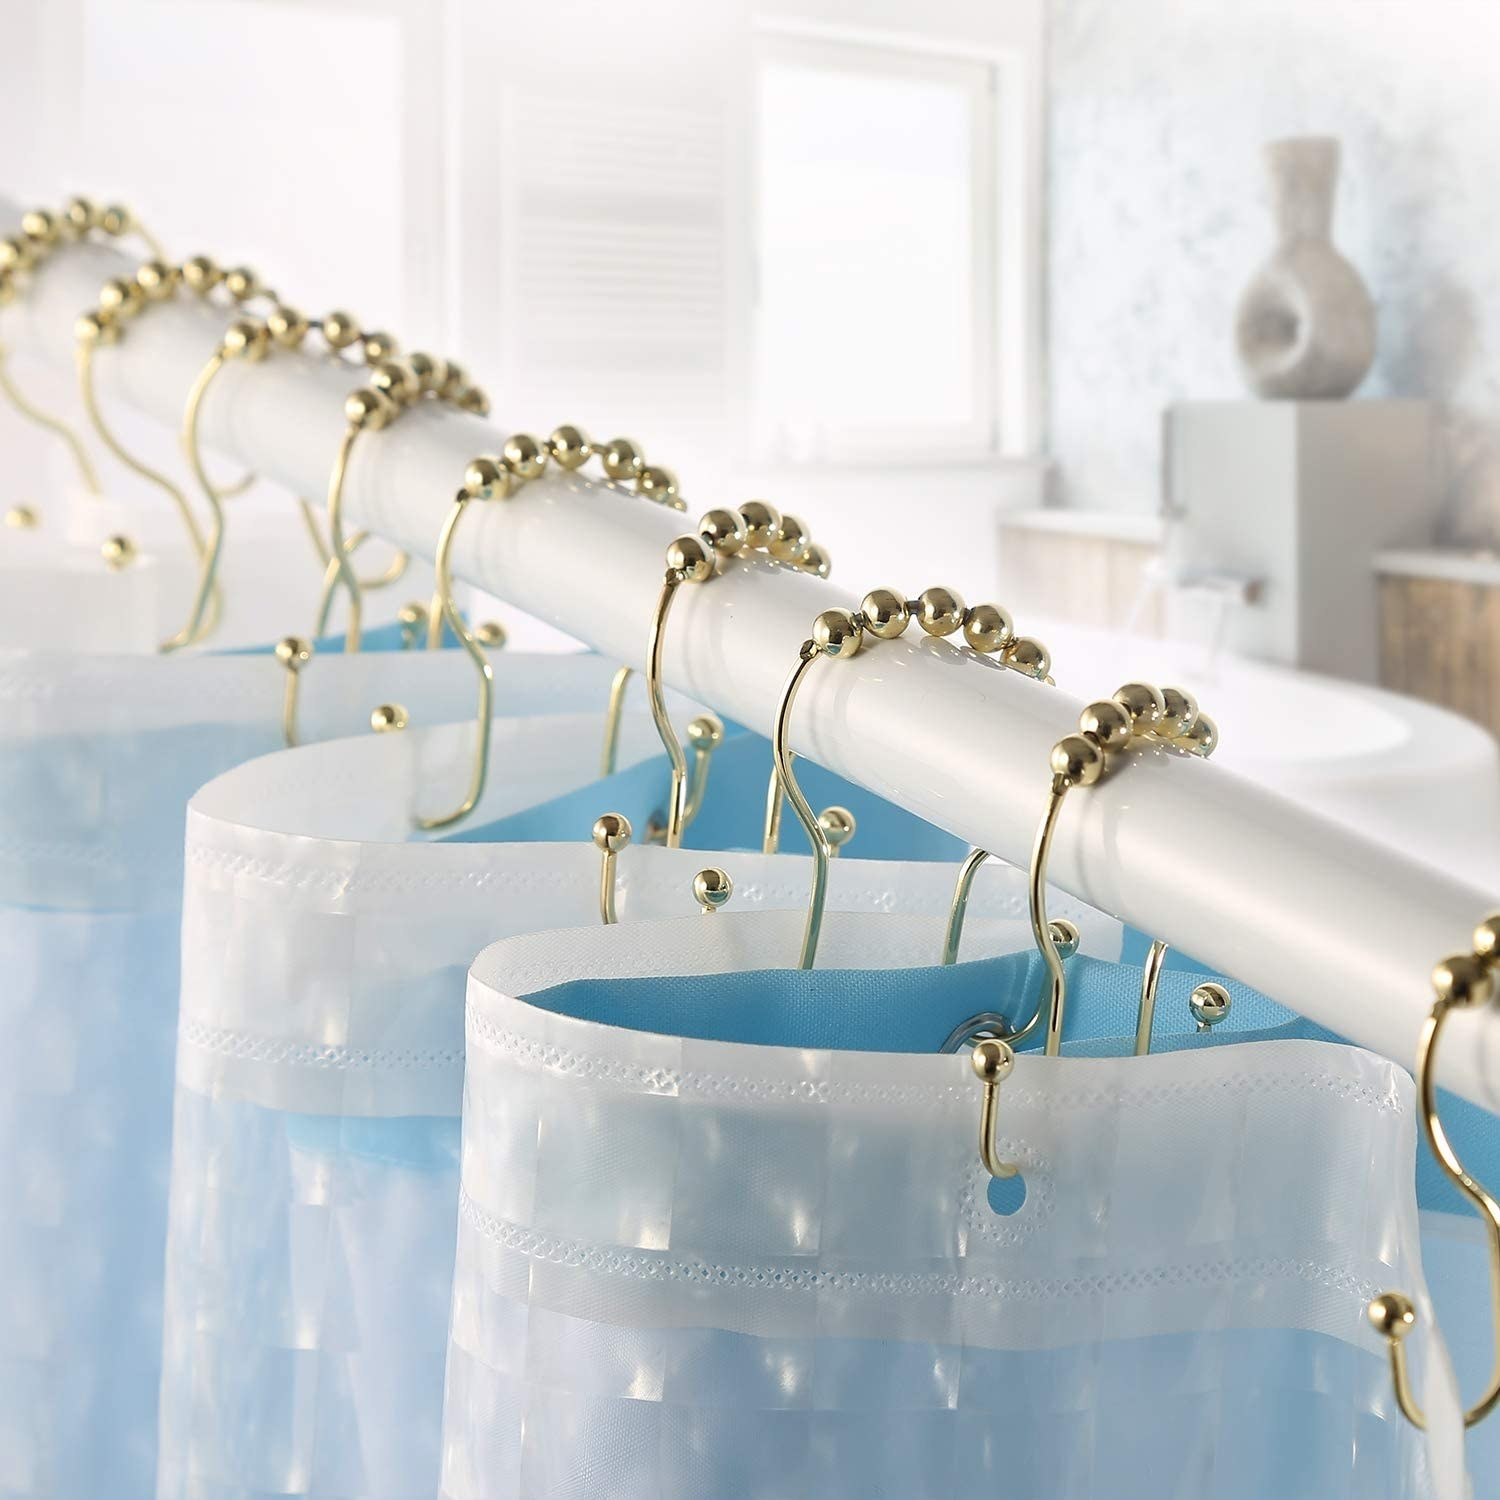 A set of gold shower hooks holding up a shower curtain